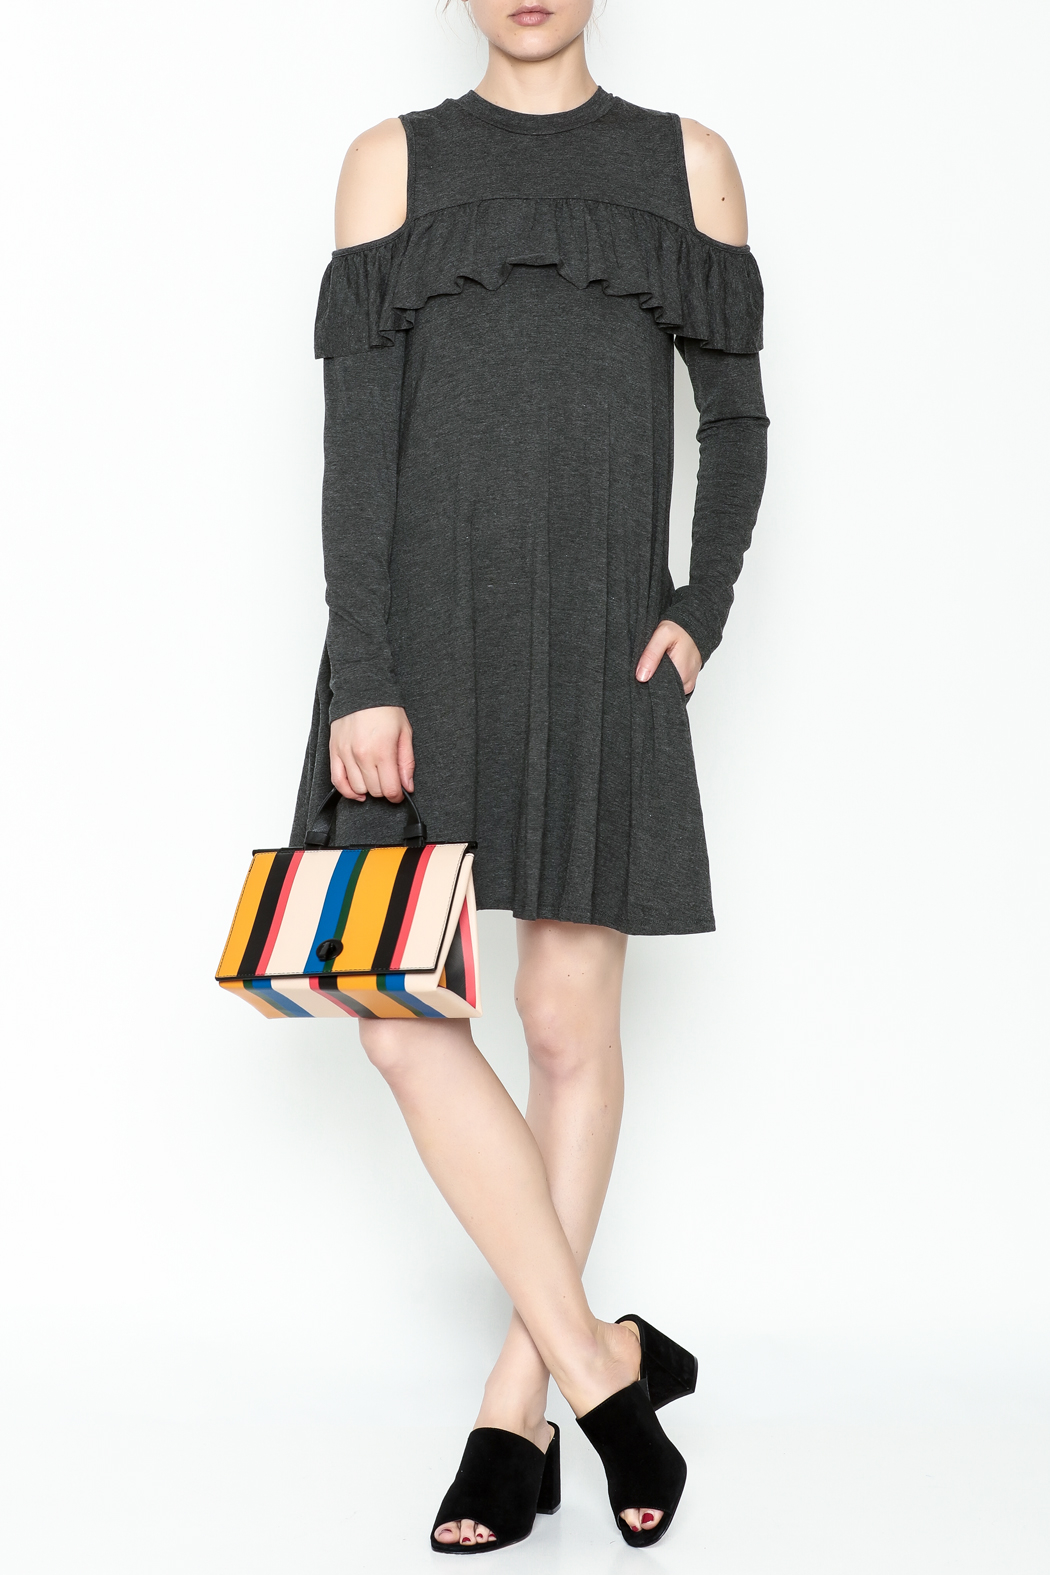 Elan Ruffle Swing Dress - Main Image